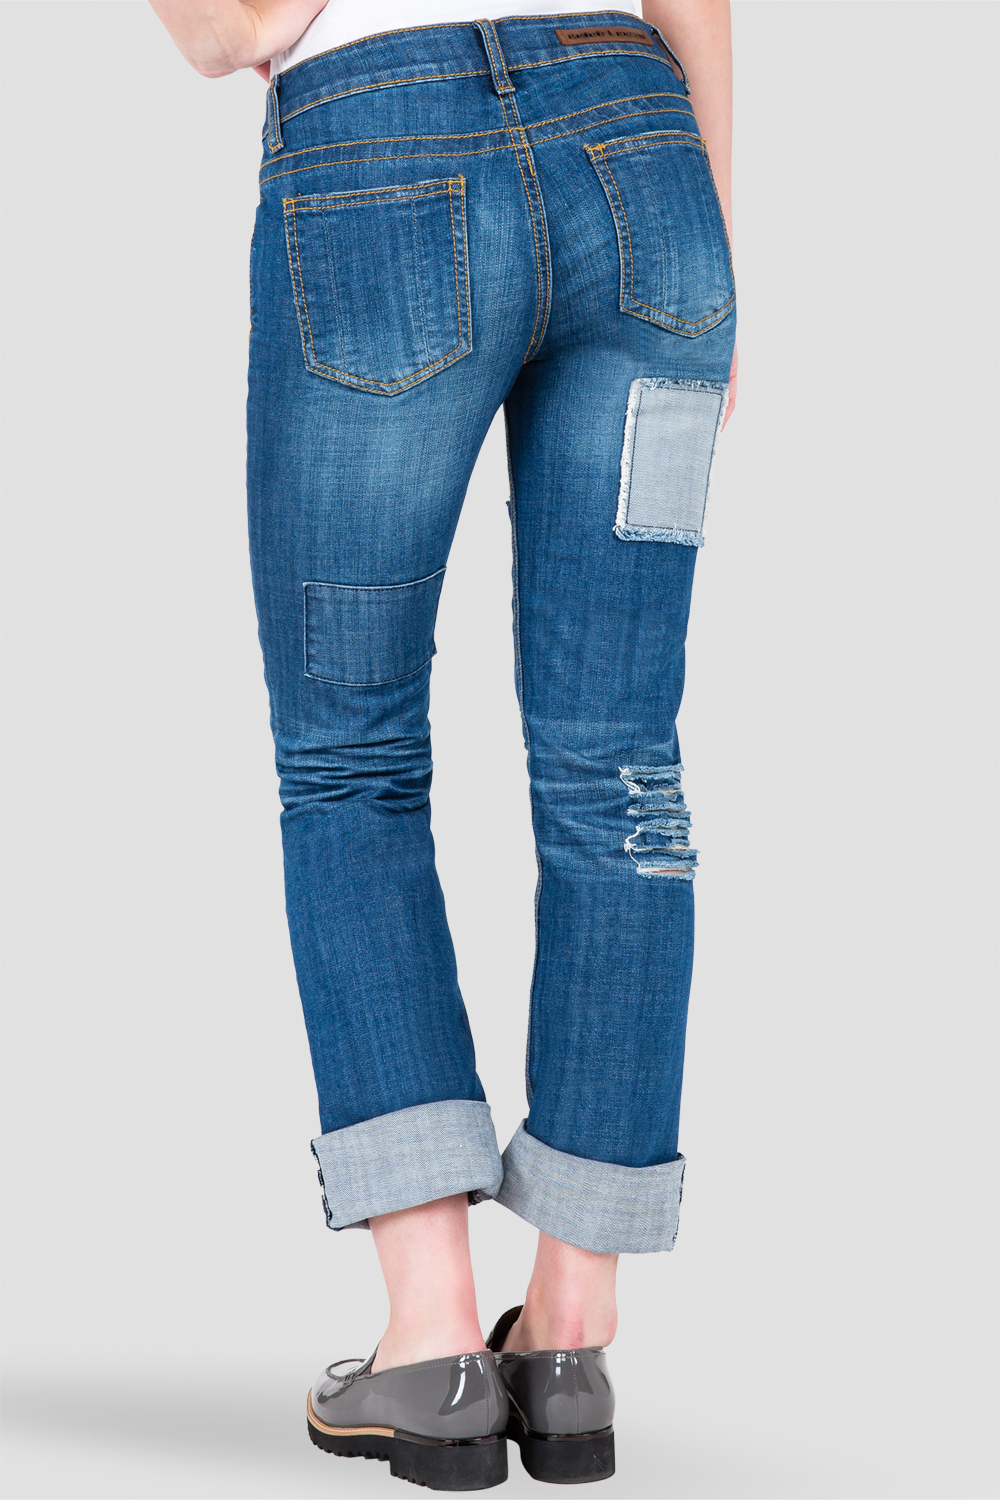 X-Boyfriend Destroyed Patched Low Rise Jeans